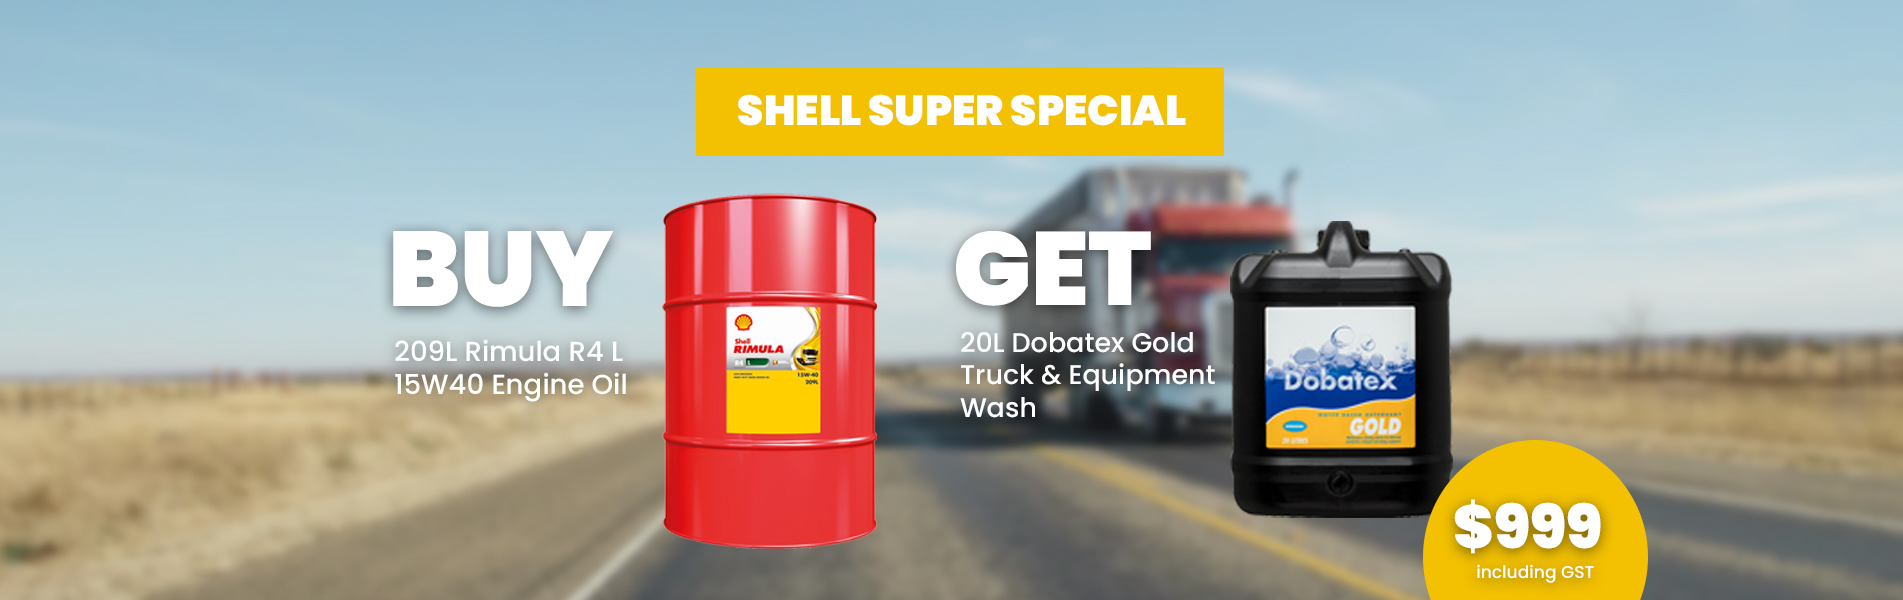 Shell Super Special Deal